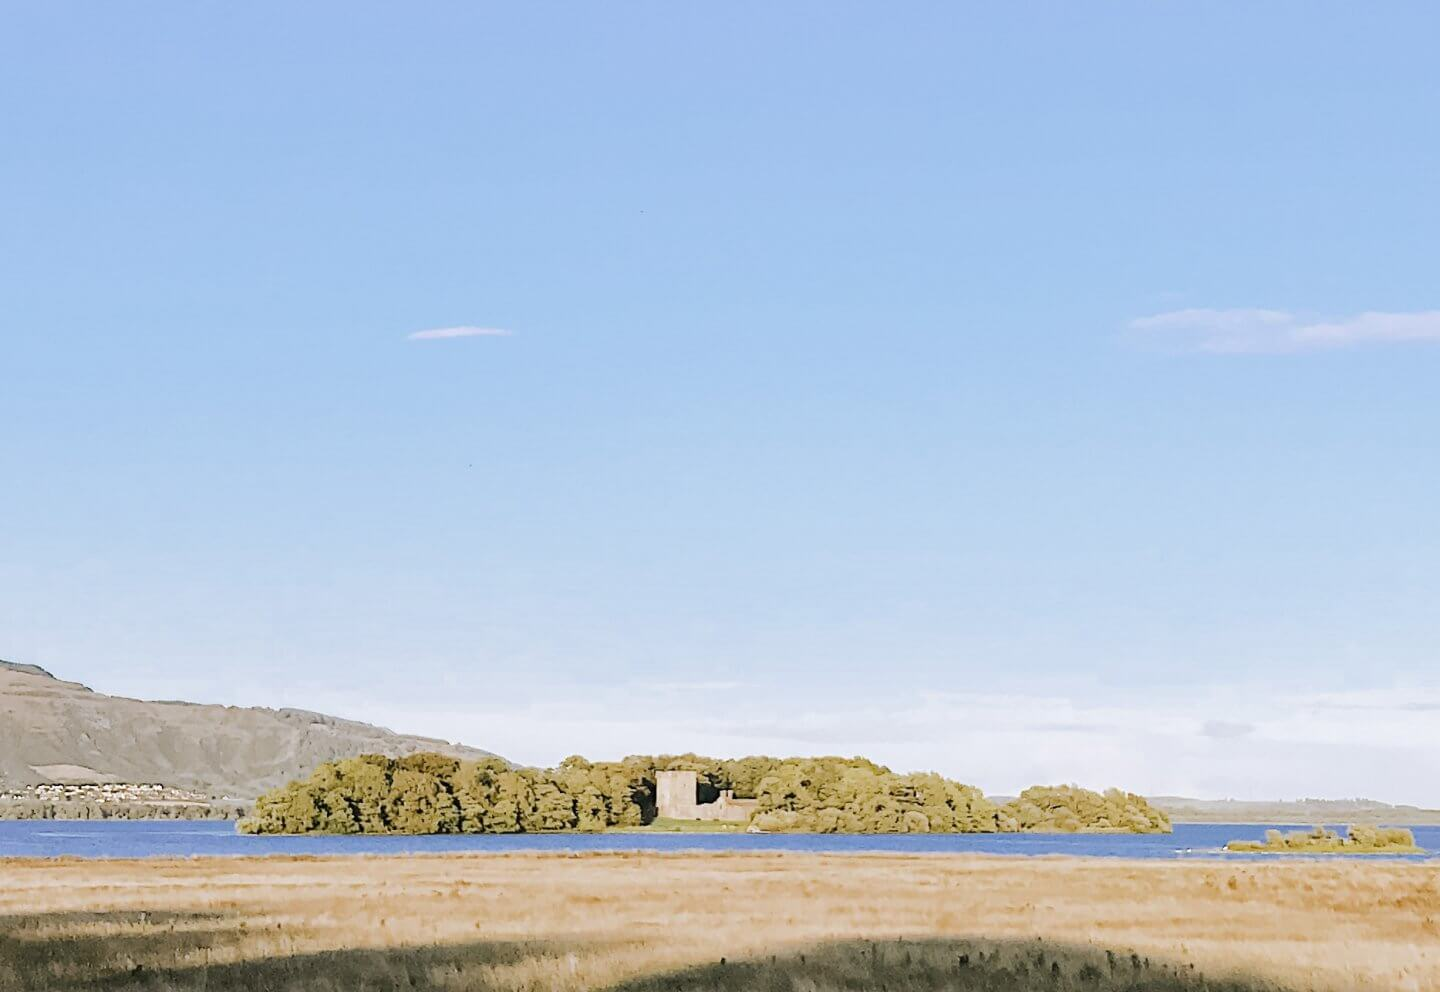 image of Loch Leven and Lochleven castle, castles in Scotland to visit